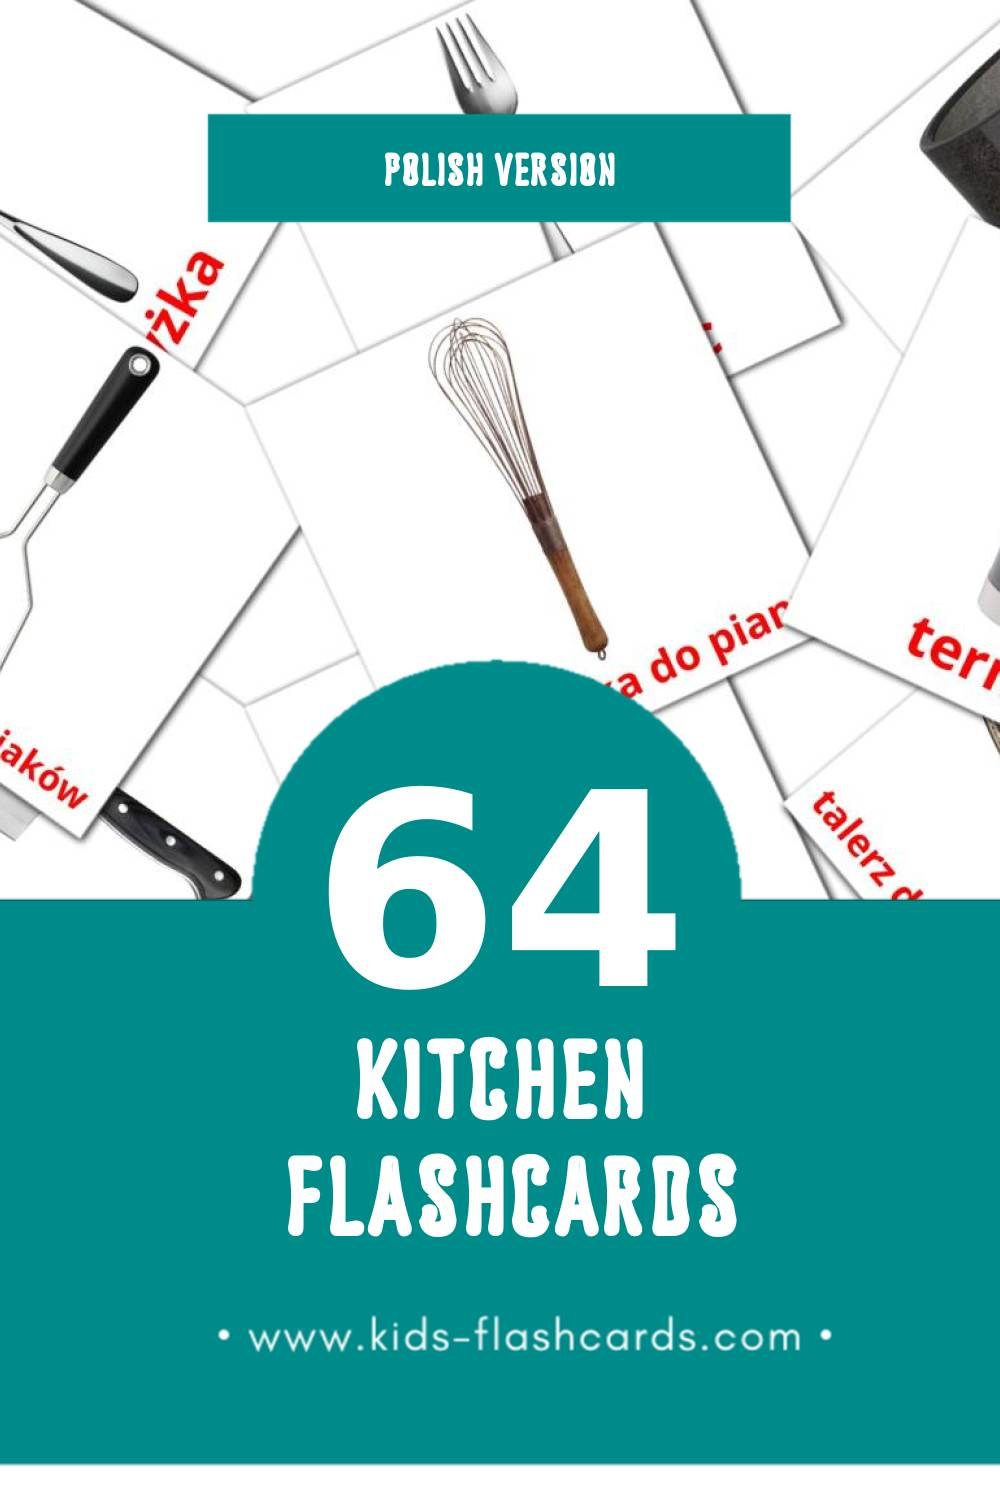 Visual Kuchnia Flashcards for Toddlers (64 cards in Polish)